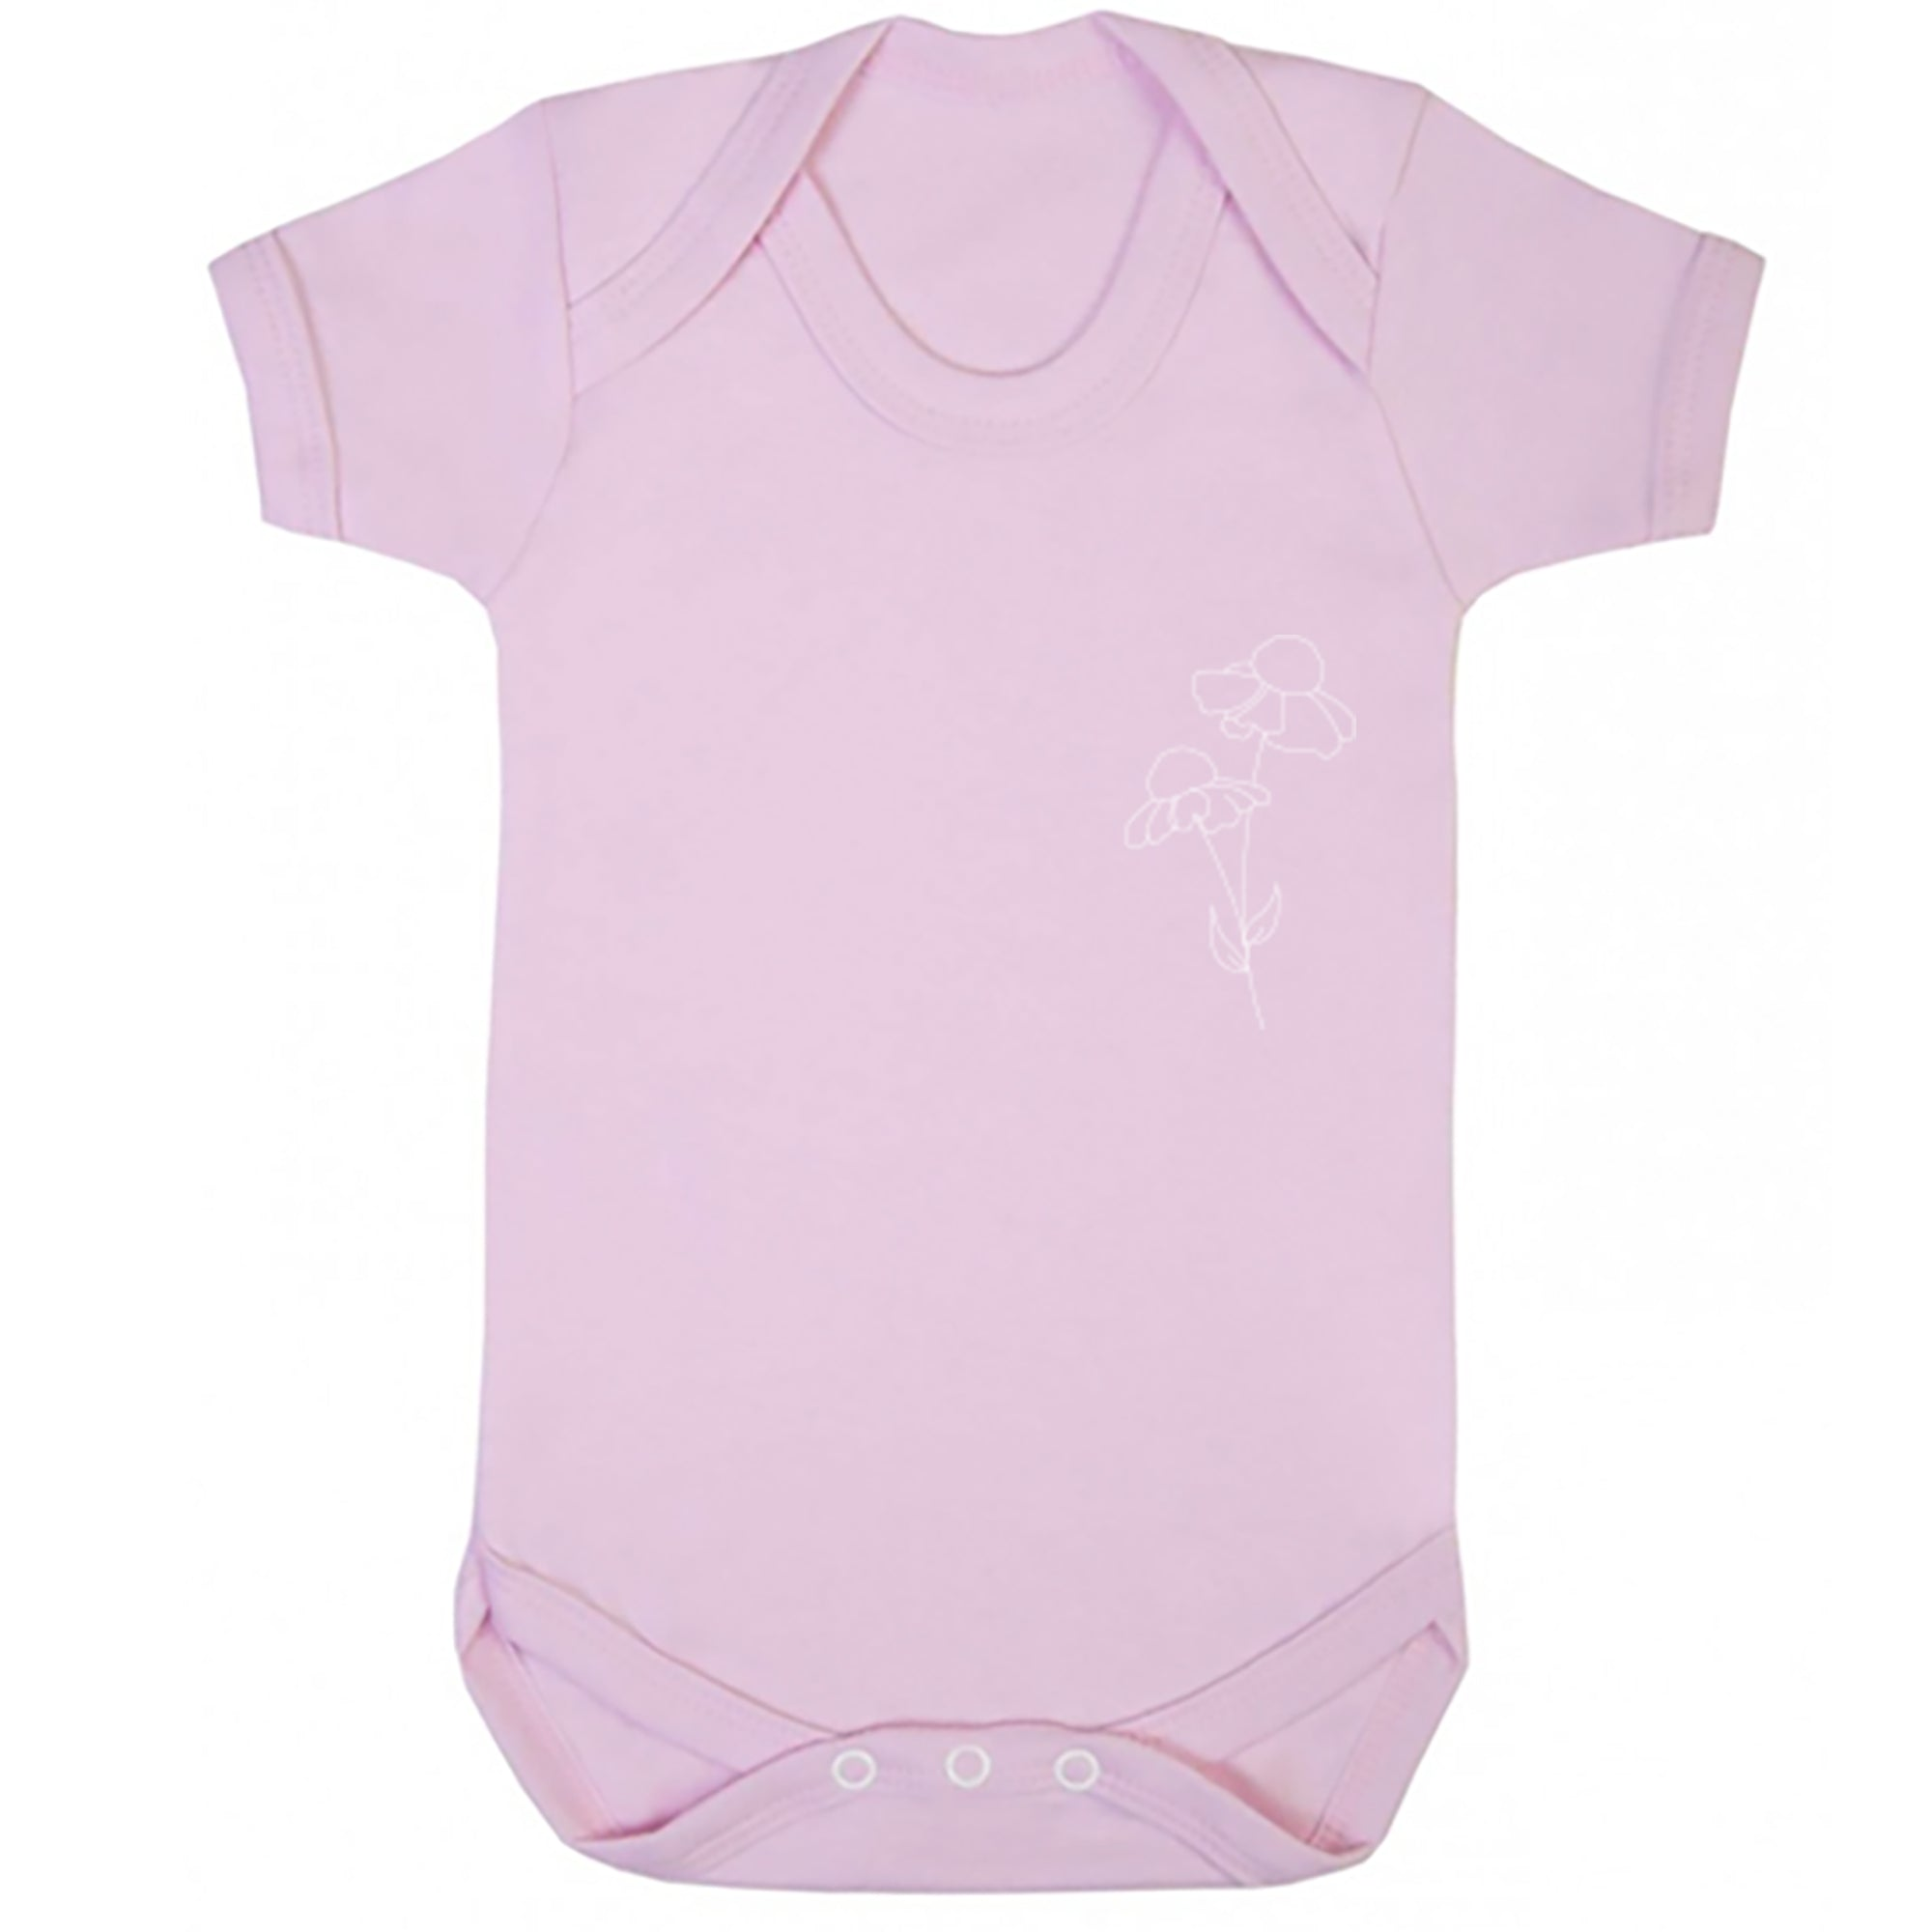 Helenium Stem Pocket Baby Vest S0769 - Illustrated Identity Ltd.